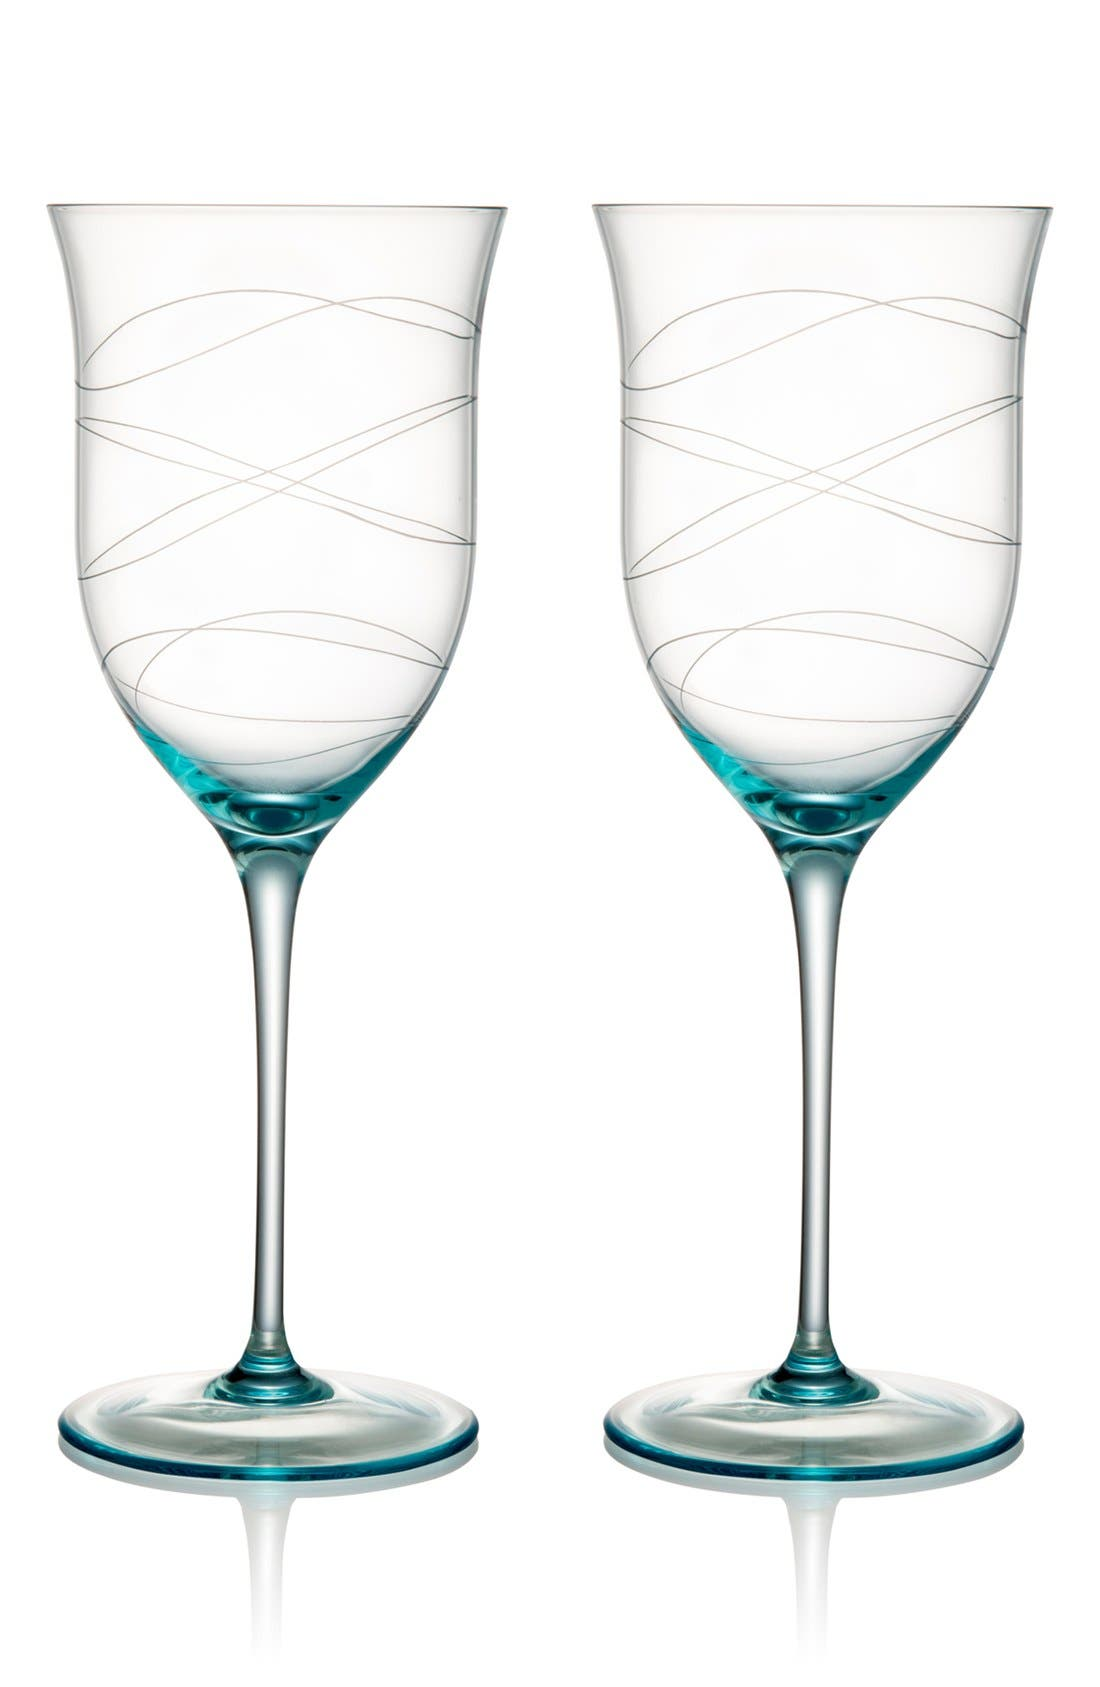 Main Image - Nambé 'Motus' Crystal Goblets (Set of 2)